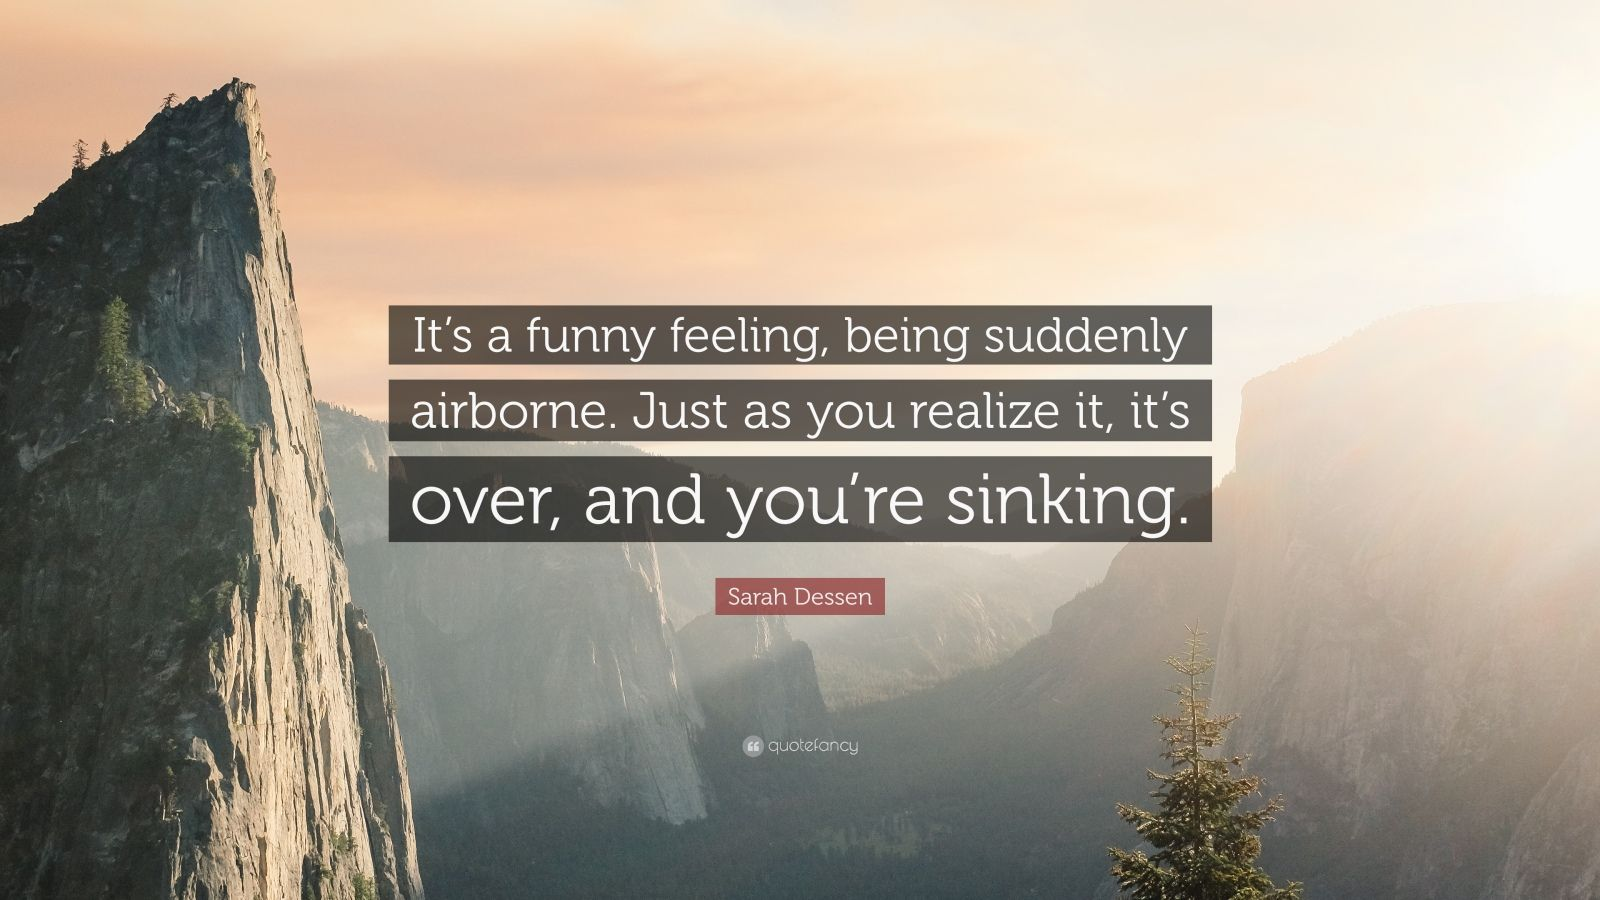 """Sarah Dessen Quote: """"It's a funny feeling, being suddenly airborne. Just as you realize it, it's over, and you're sinking."""""""